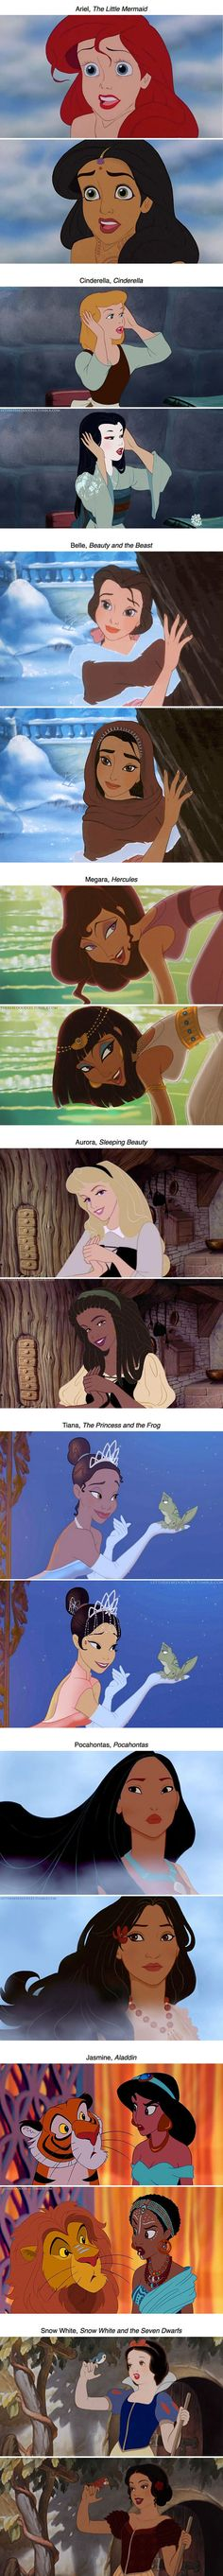 If Disney princesses were from different countries